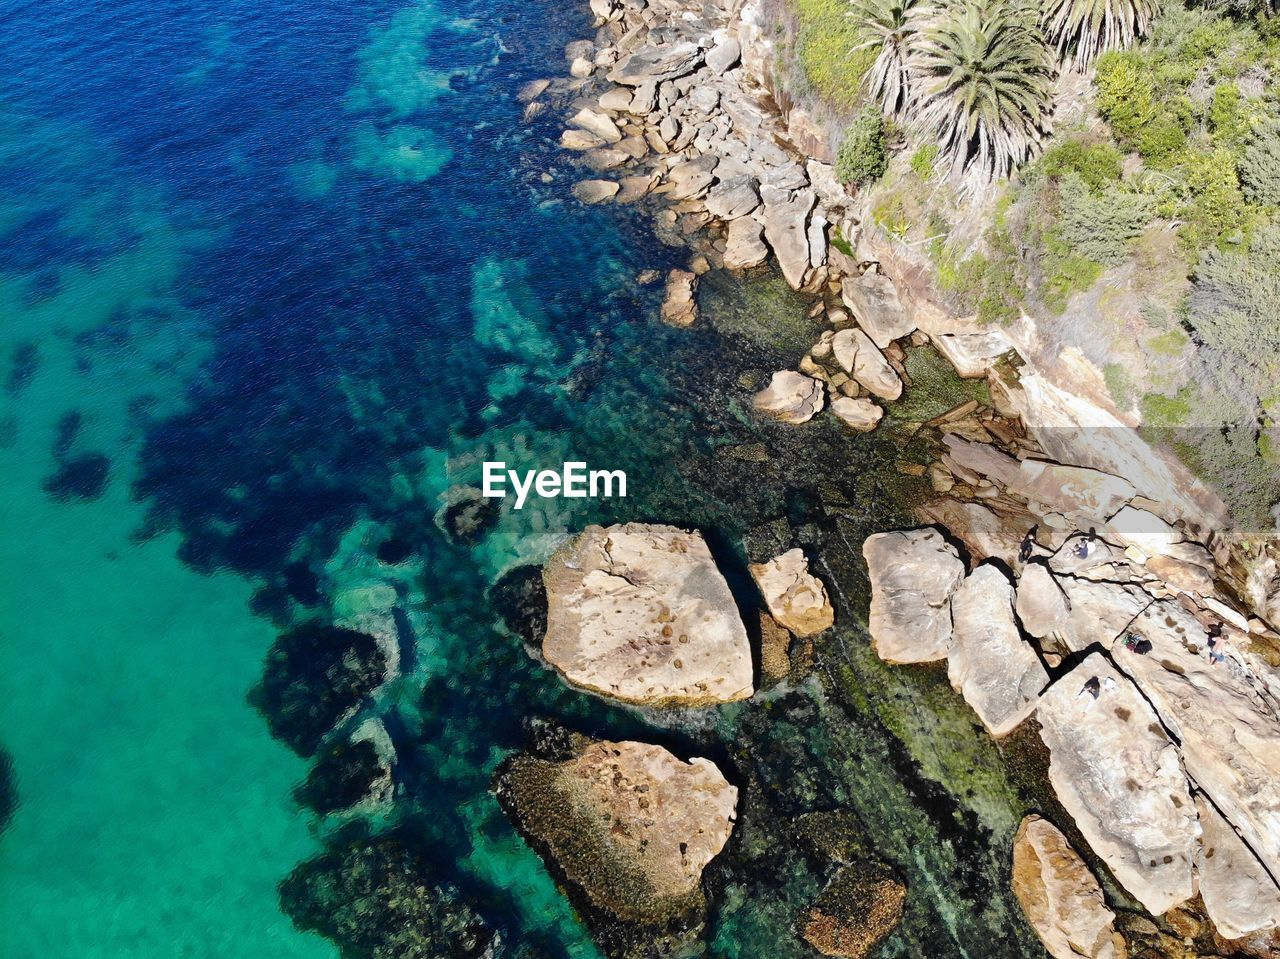 water, solid, rock, rock - object, beauty in nature, nature, high angle view, sea, no people, day, tranquility, scenics - nature, rock formation, transparent, underwater, outdoors, land, tranquil scene, idyllic, turquoise colored, purity, shallow